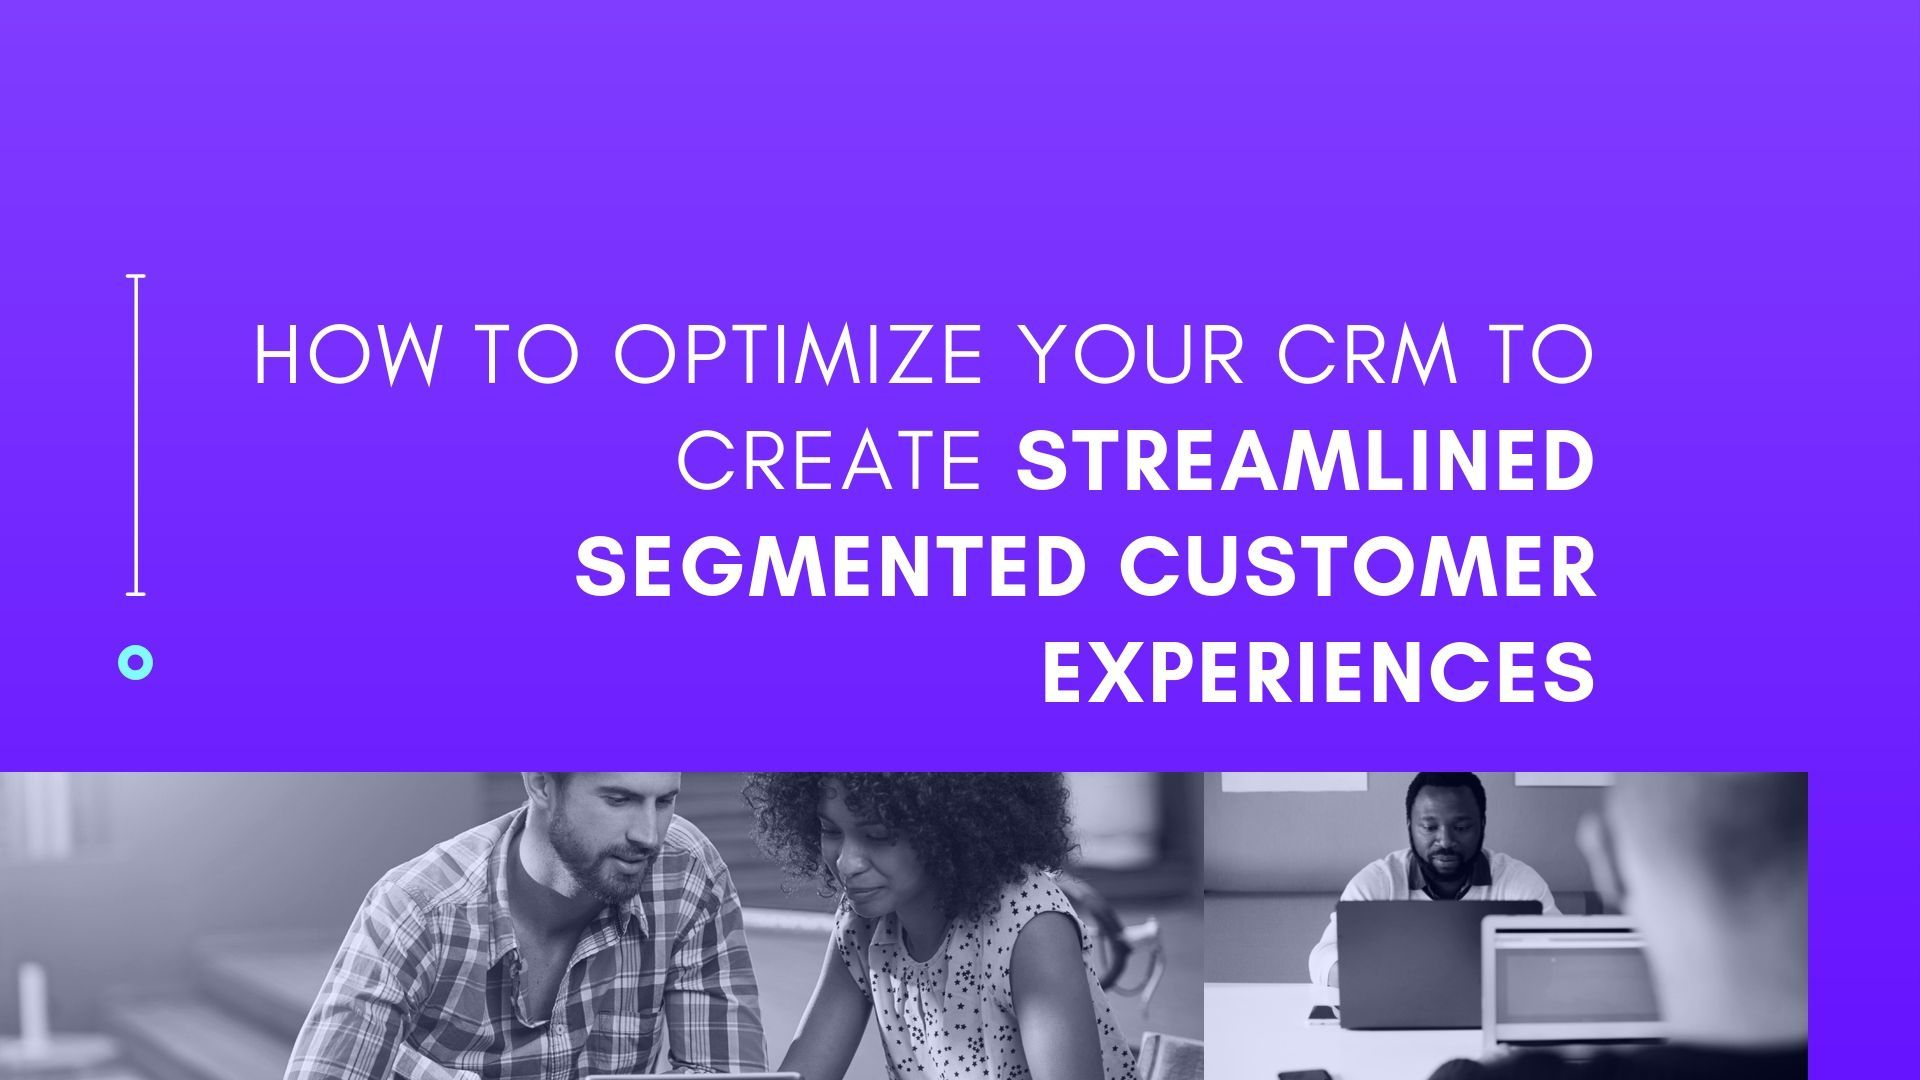 How to optimize your CRM to create streamlined segmented customer experiences